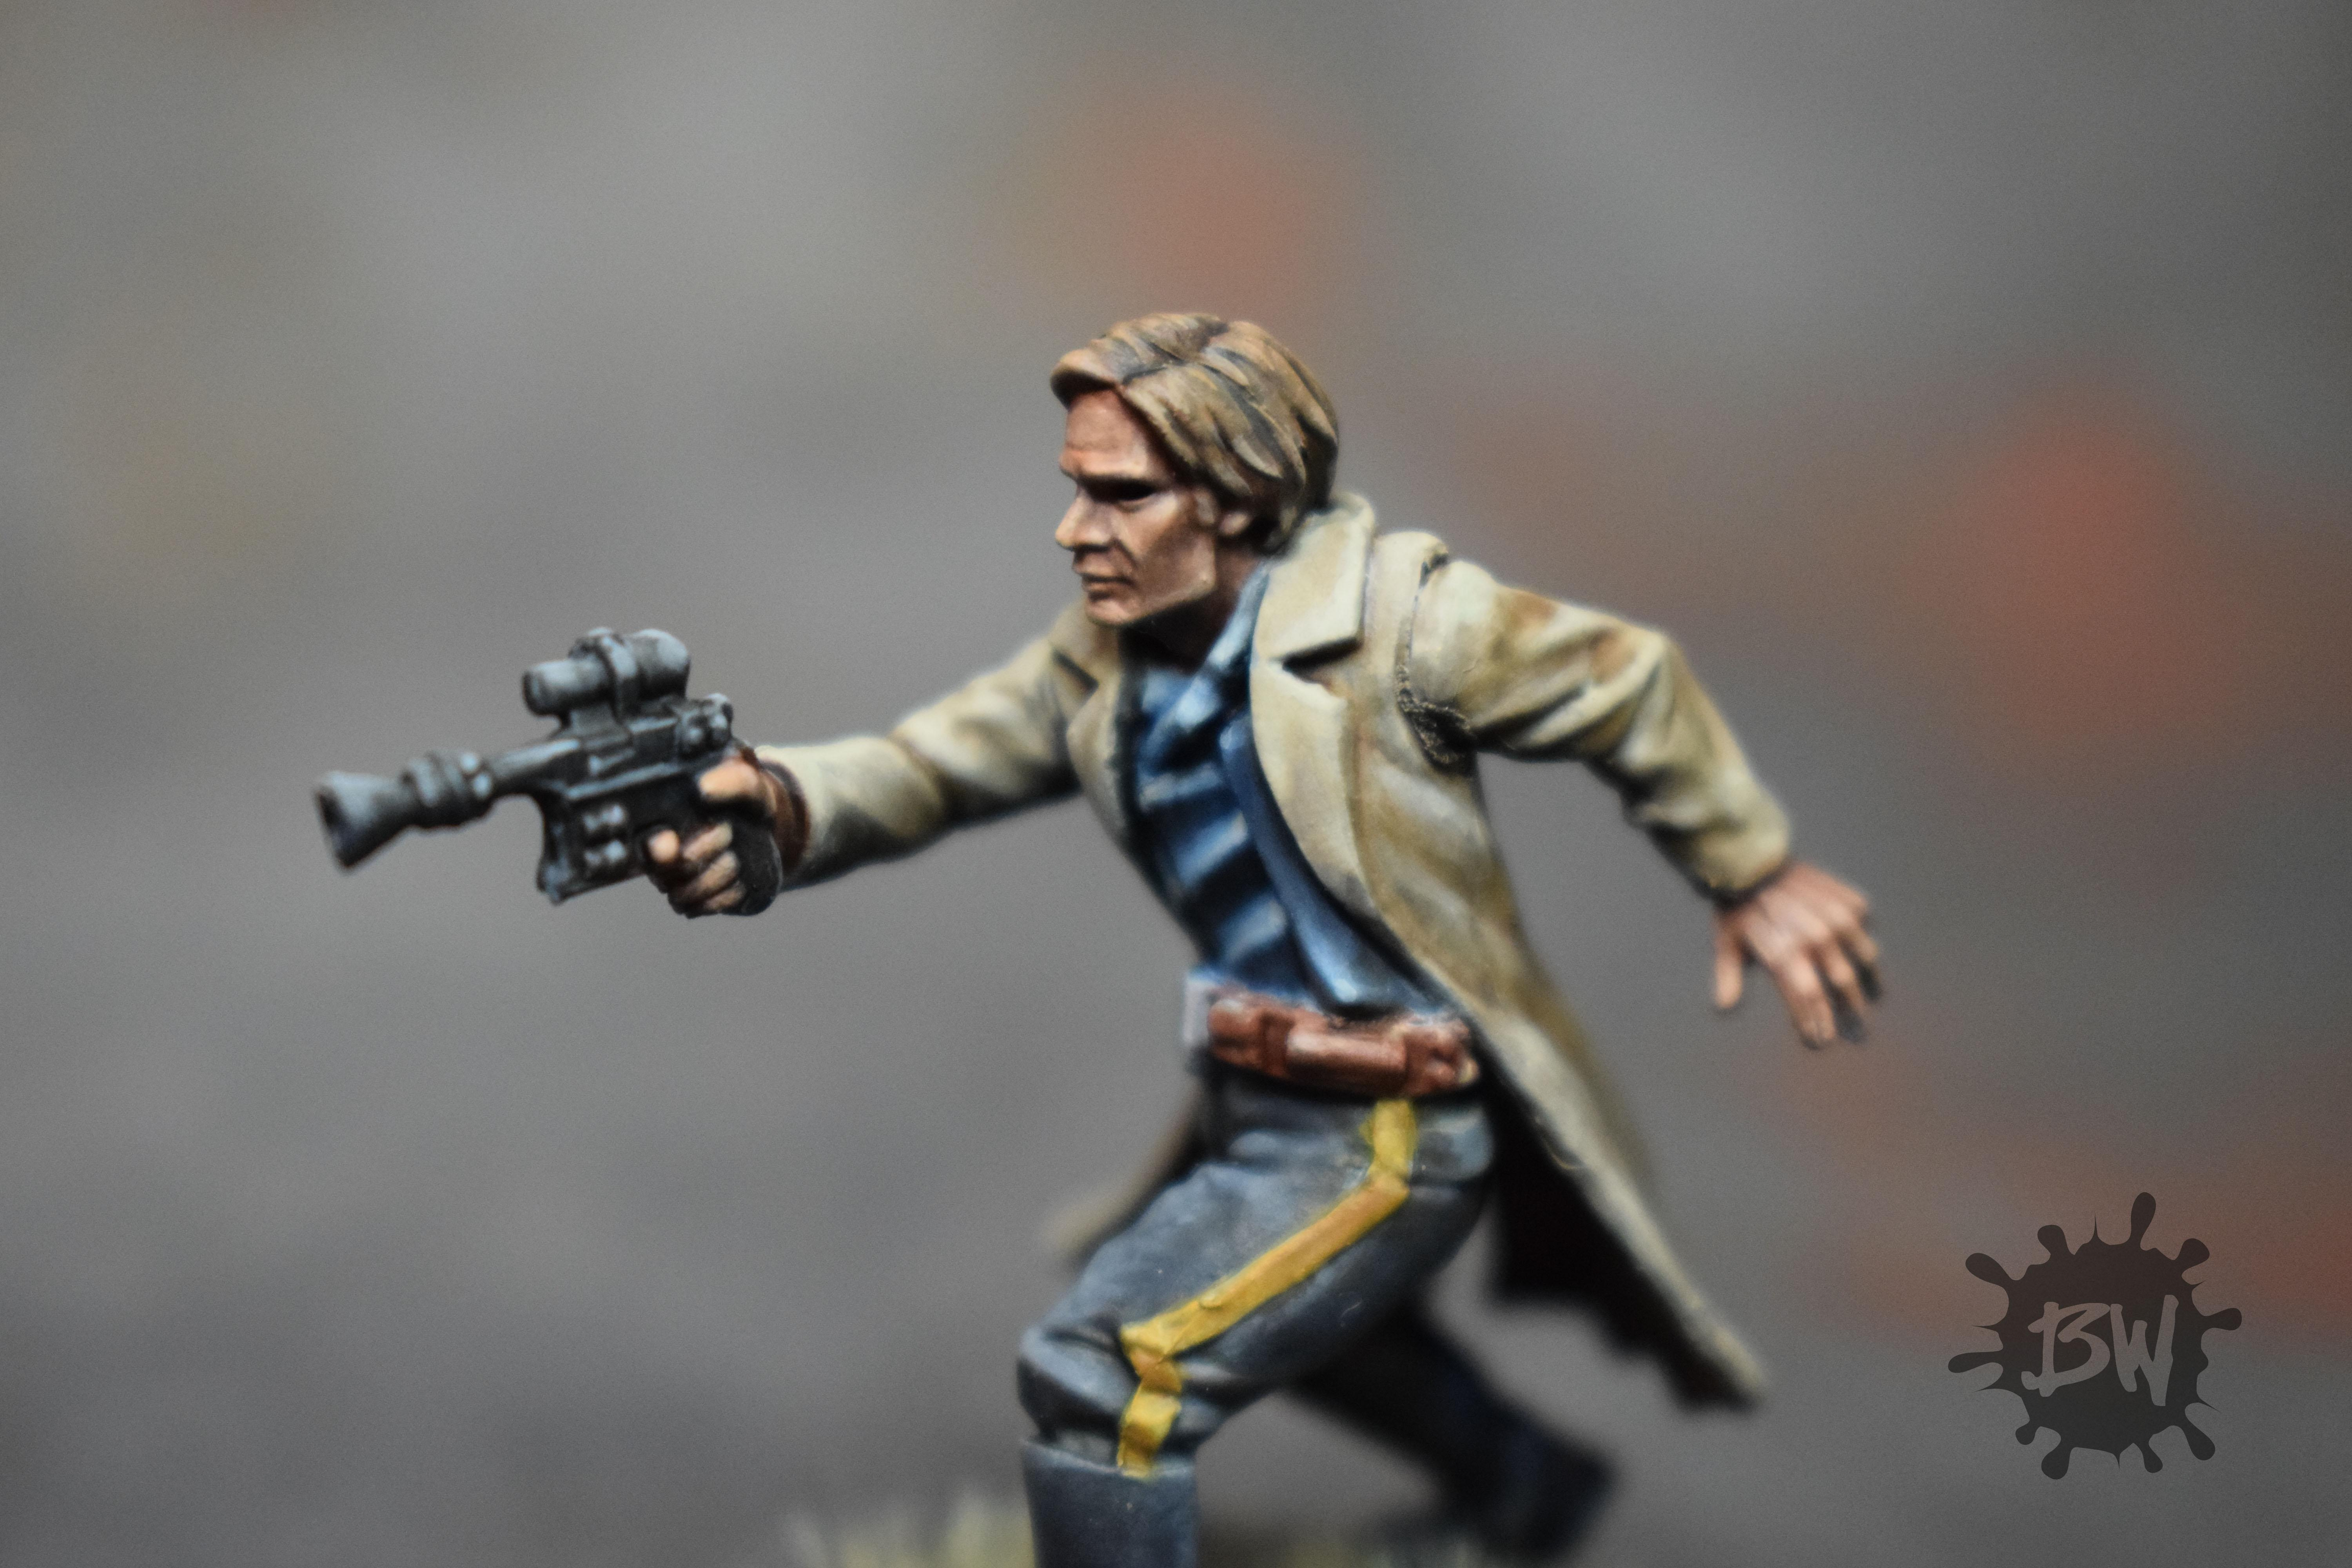 Bw, Ffg, Han Solo, Star Wars Legion